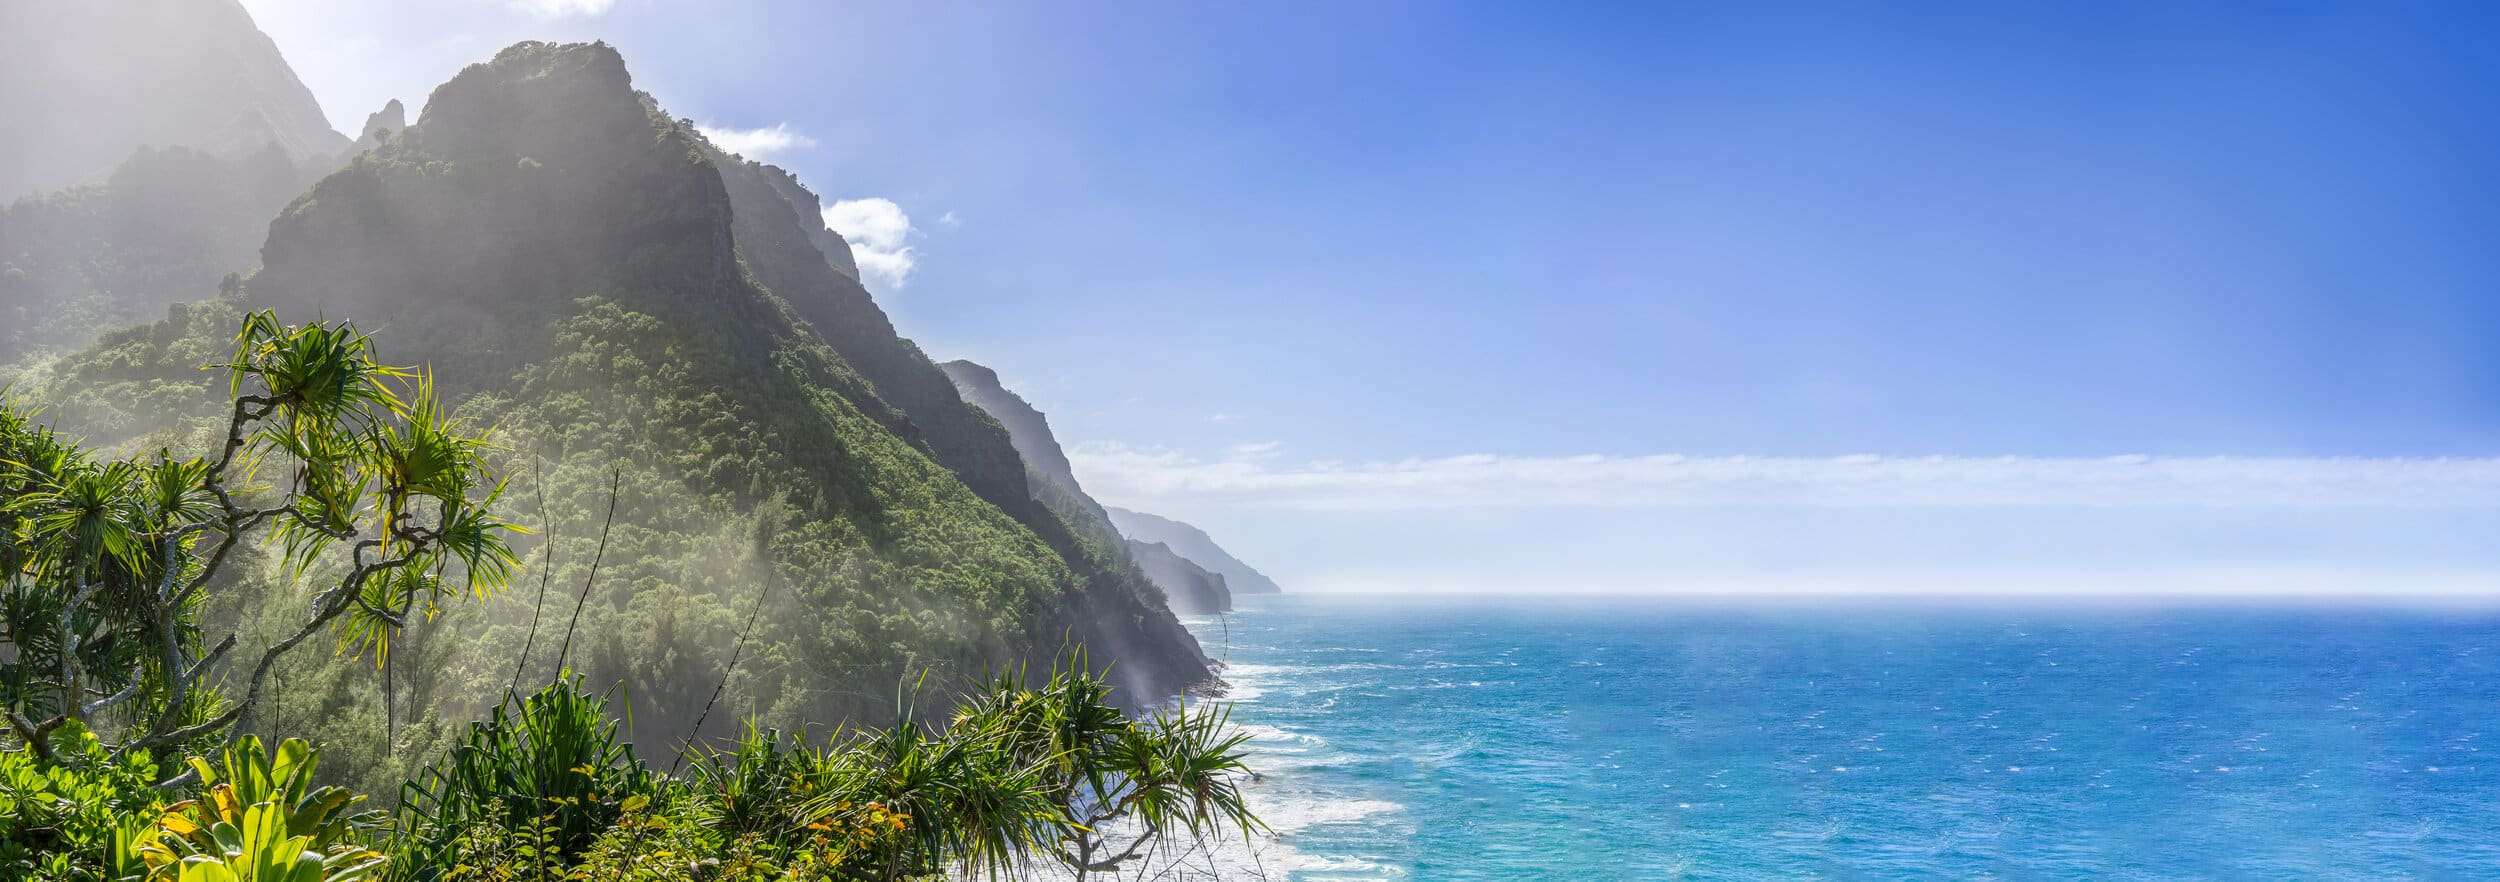 view of Ocean and mountains in Hawaii